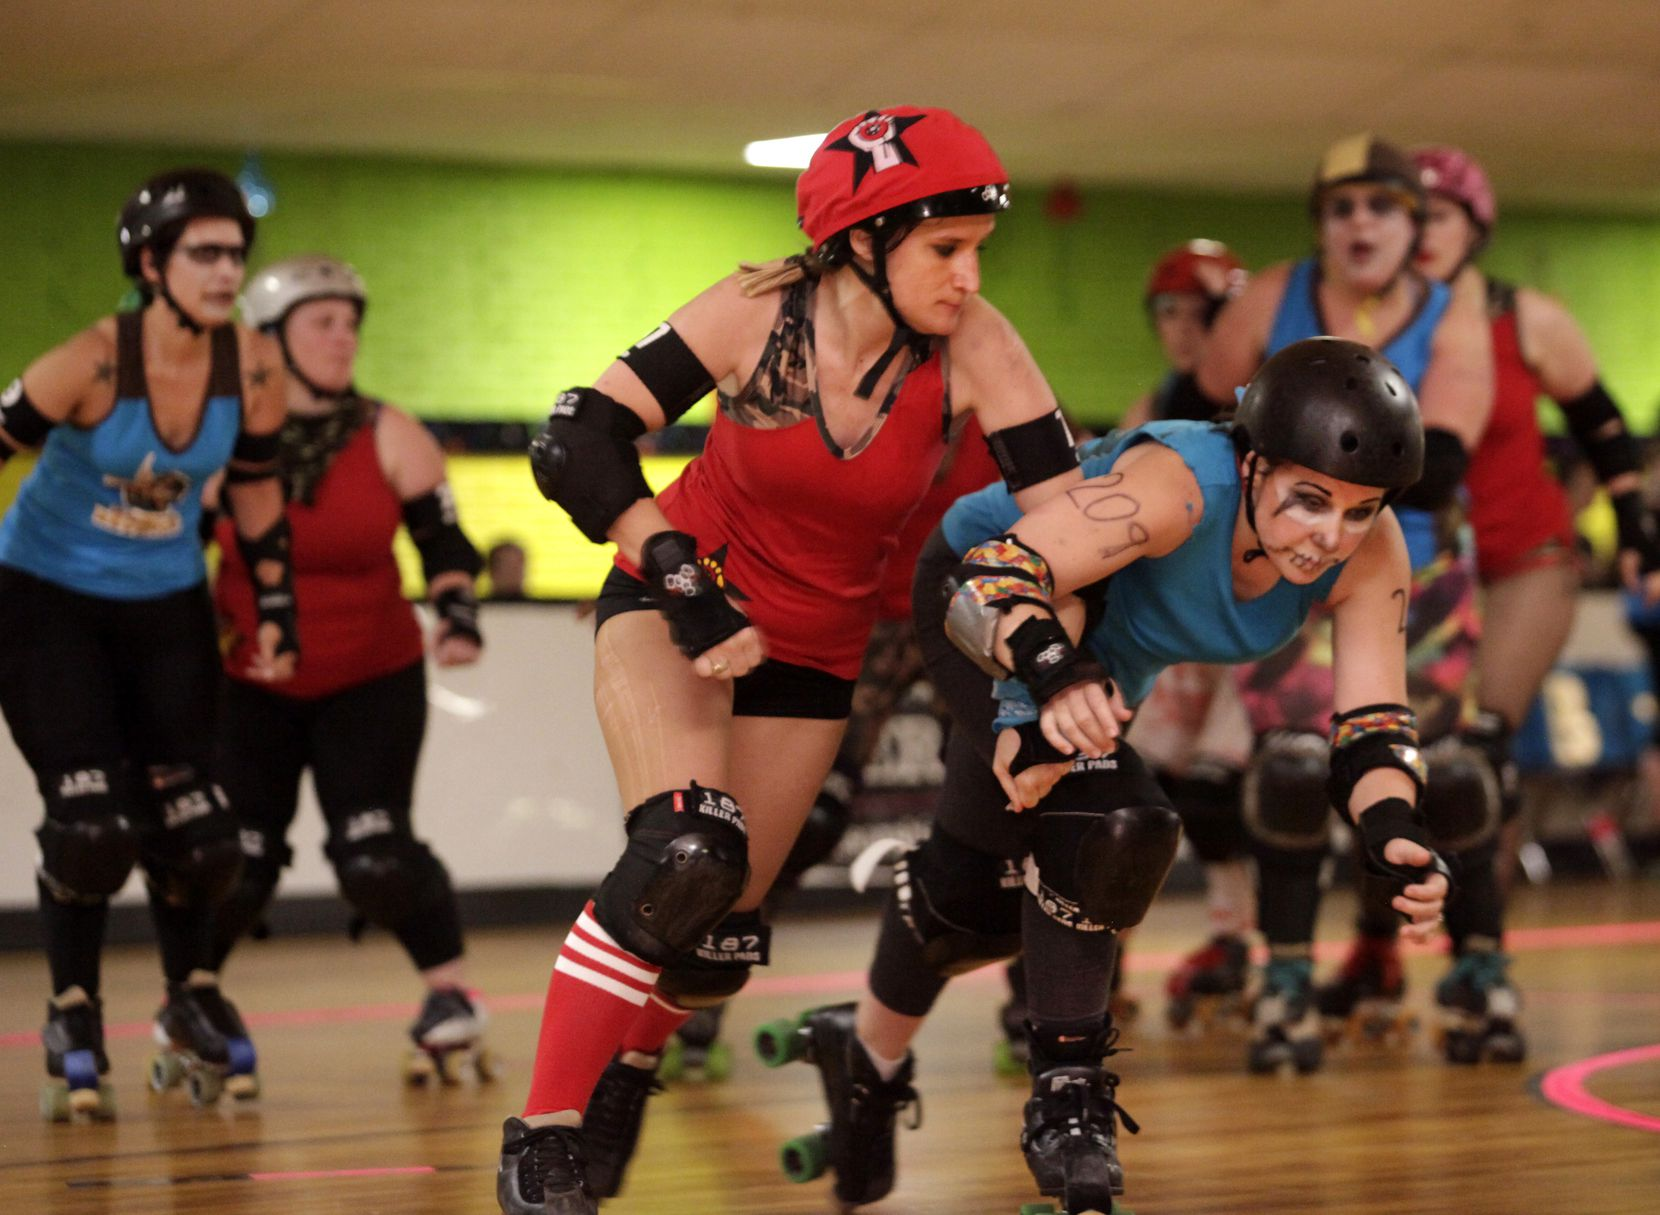 Teams La Revolucion and Ruby's Revenge battled it out during an Assassination City Roller Derby competition at Thunderbird Roller Rink in Plano on June 20, 2015.